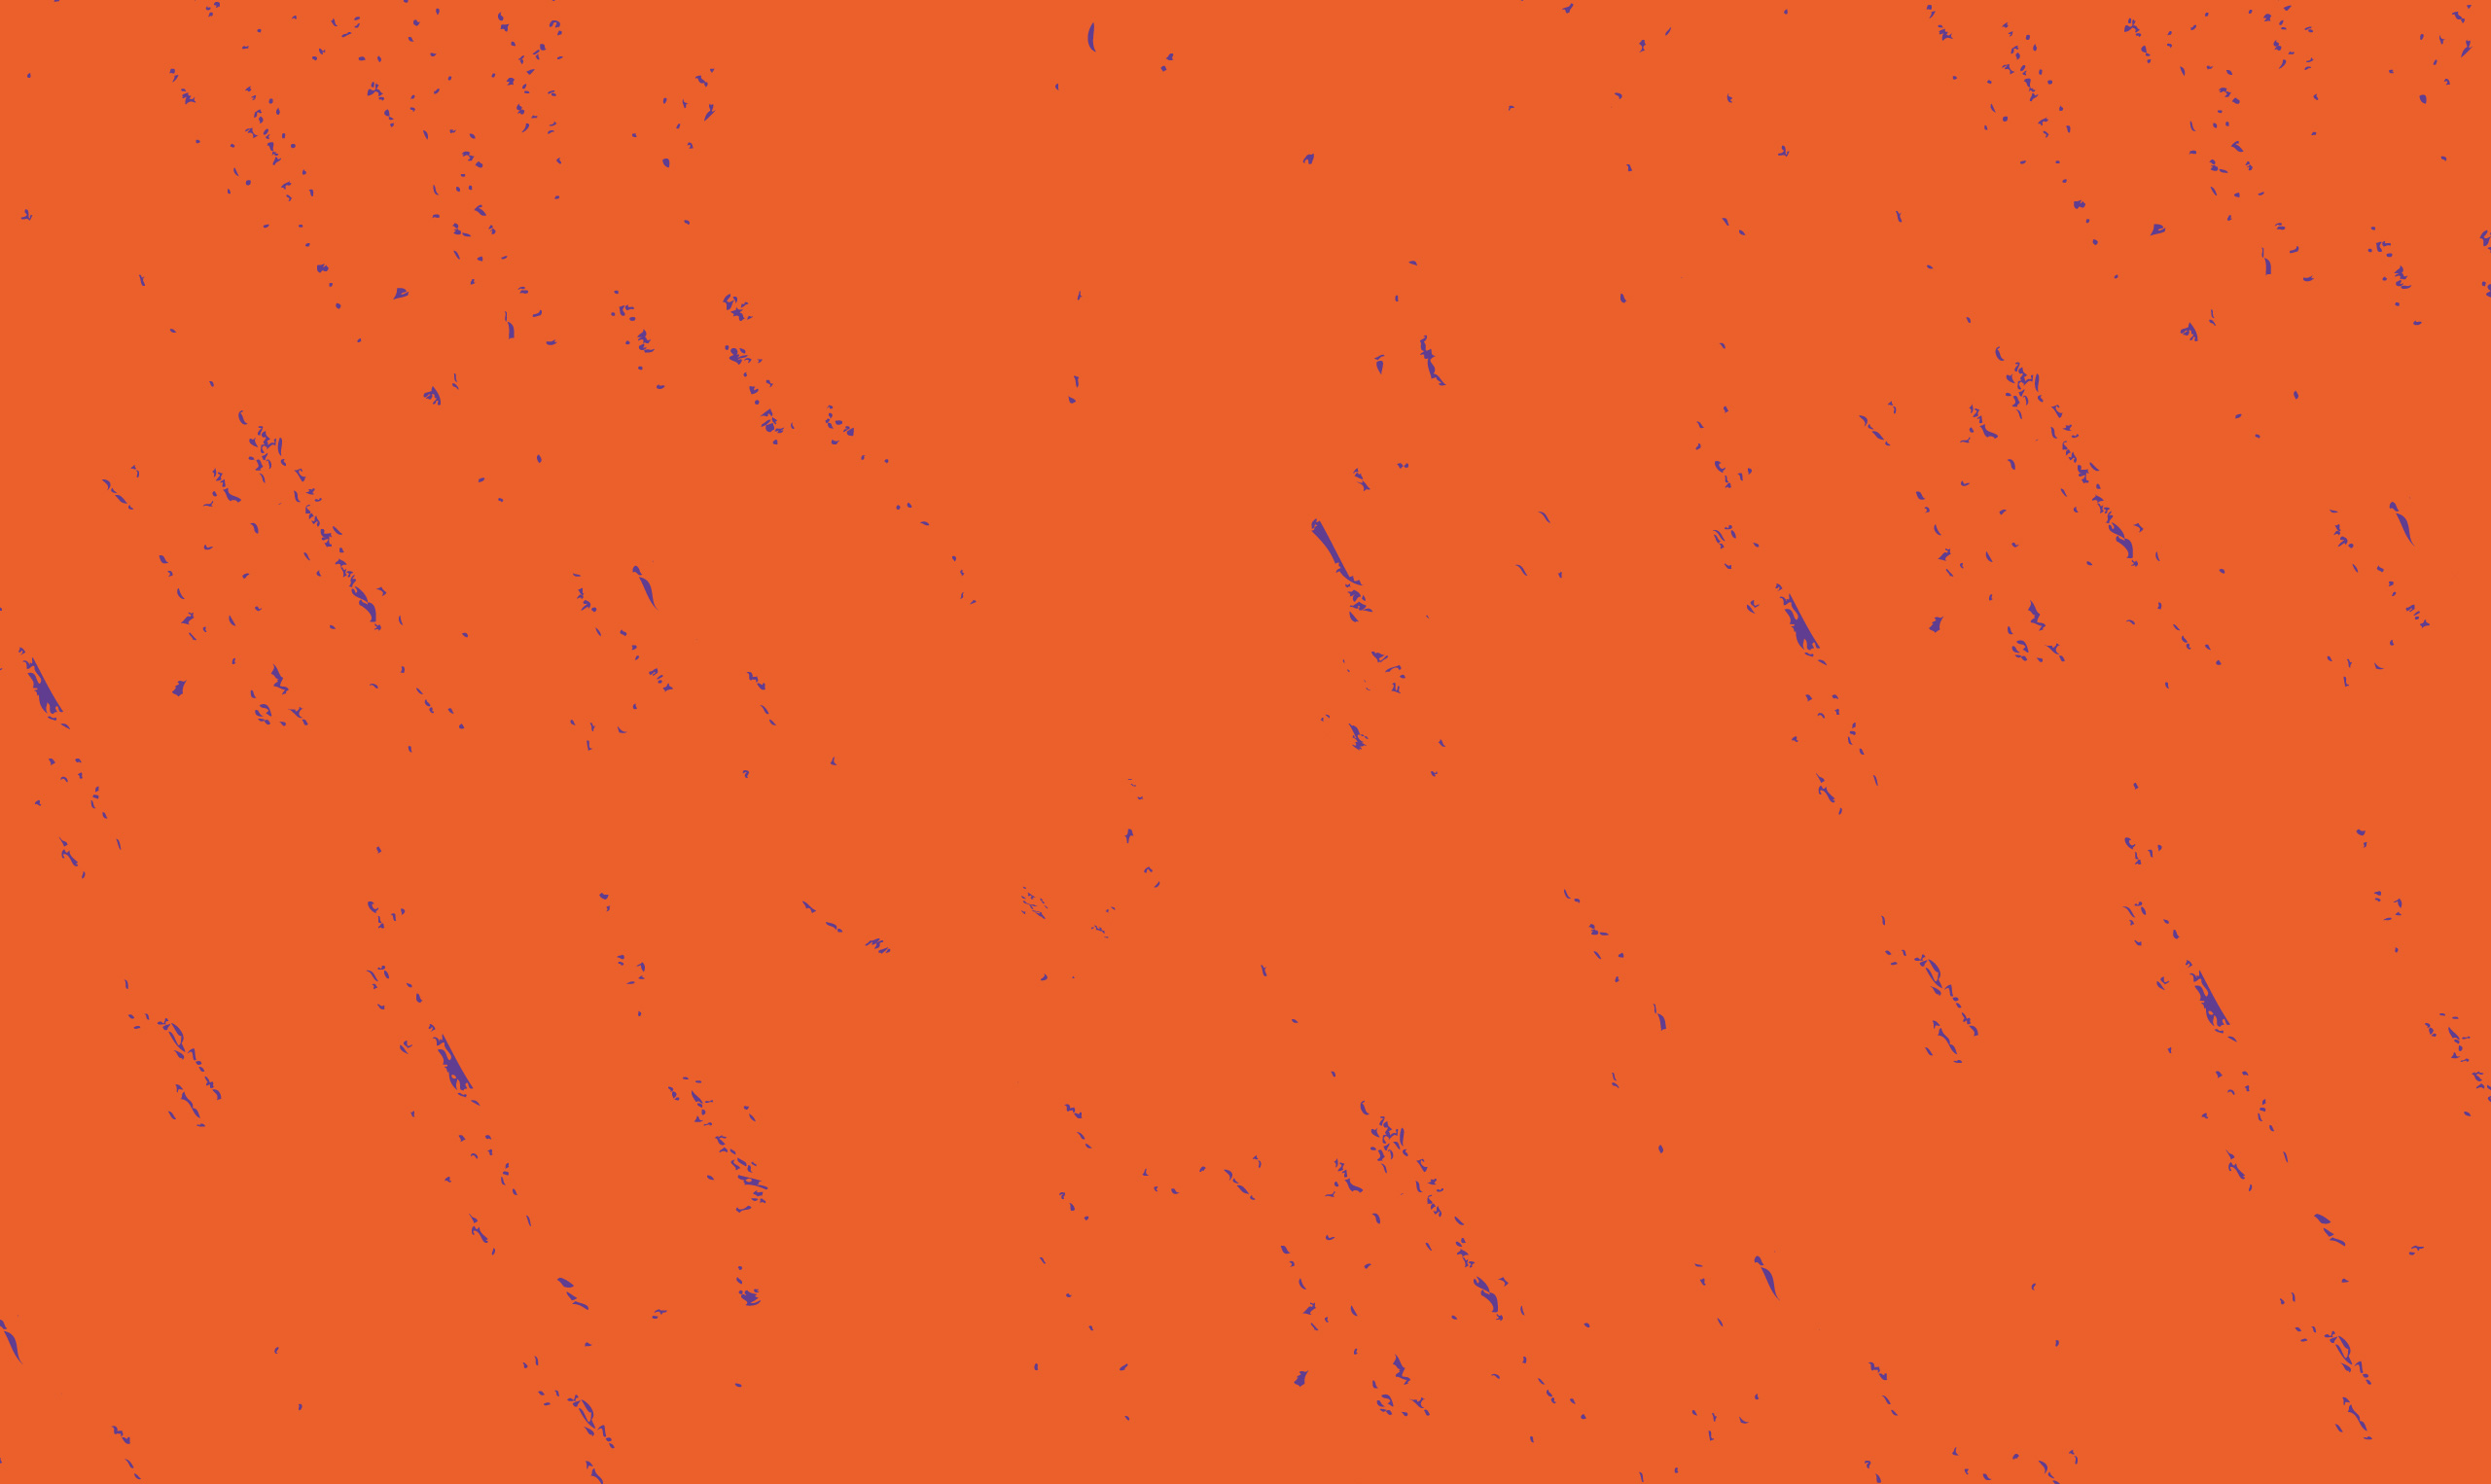 Orange banner with brush